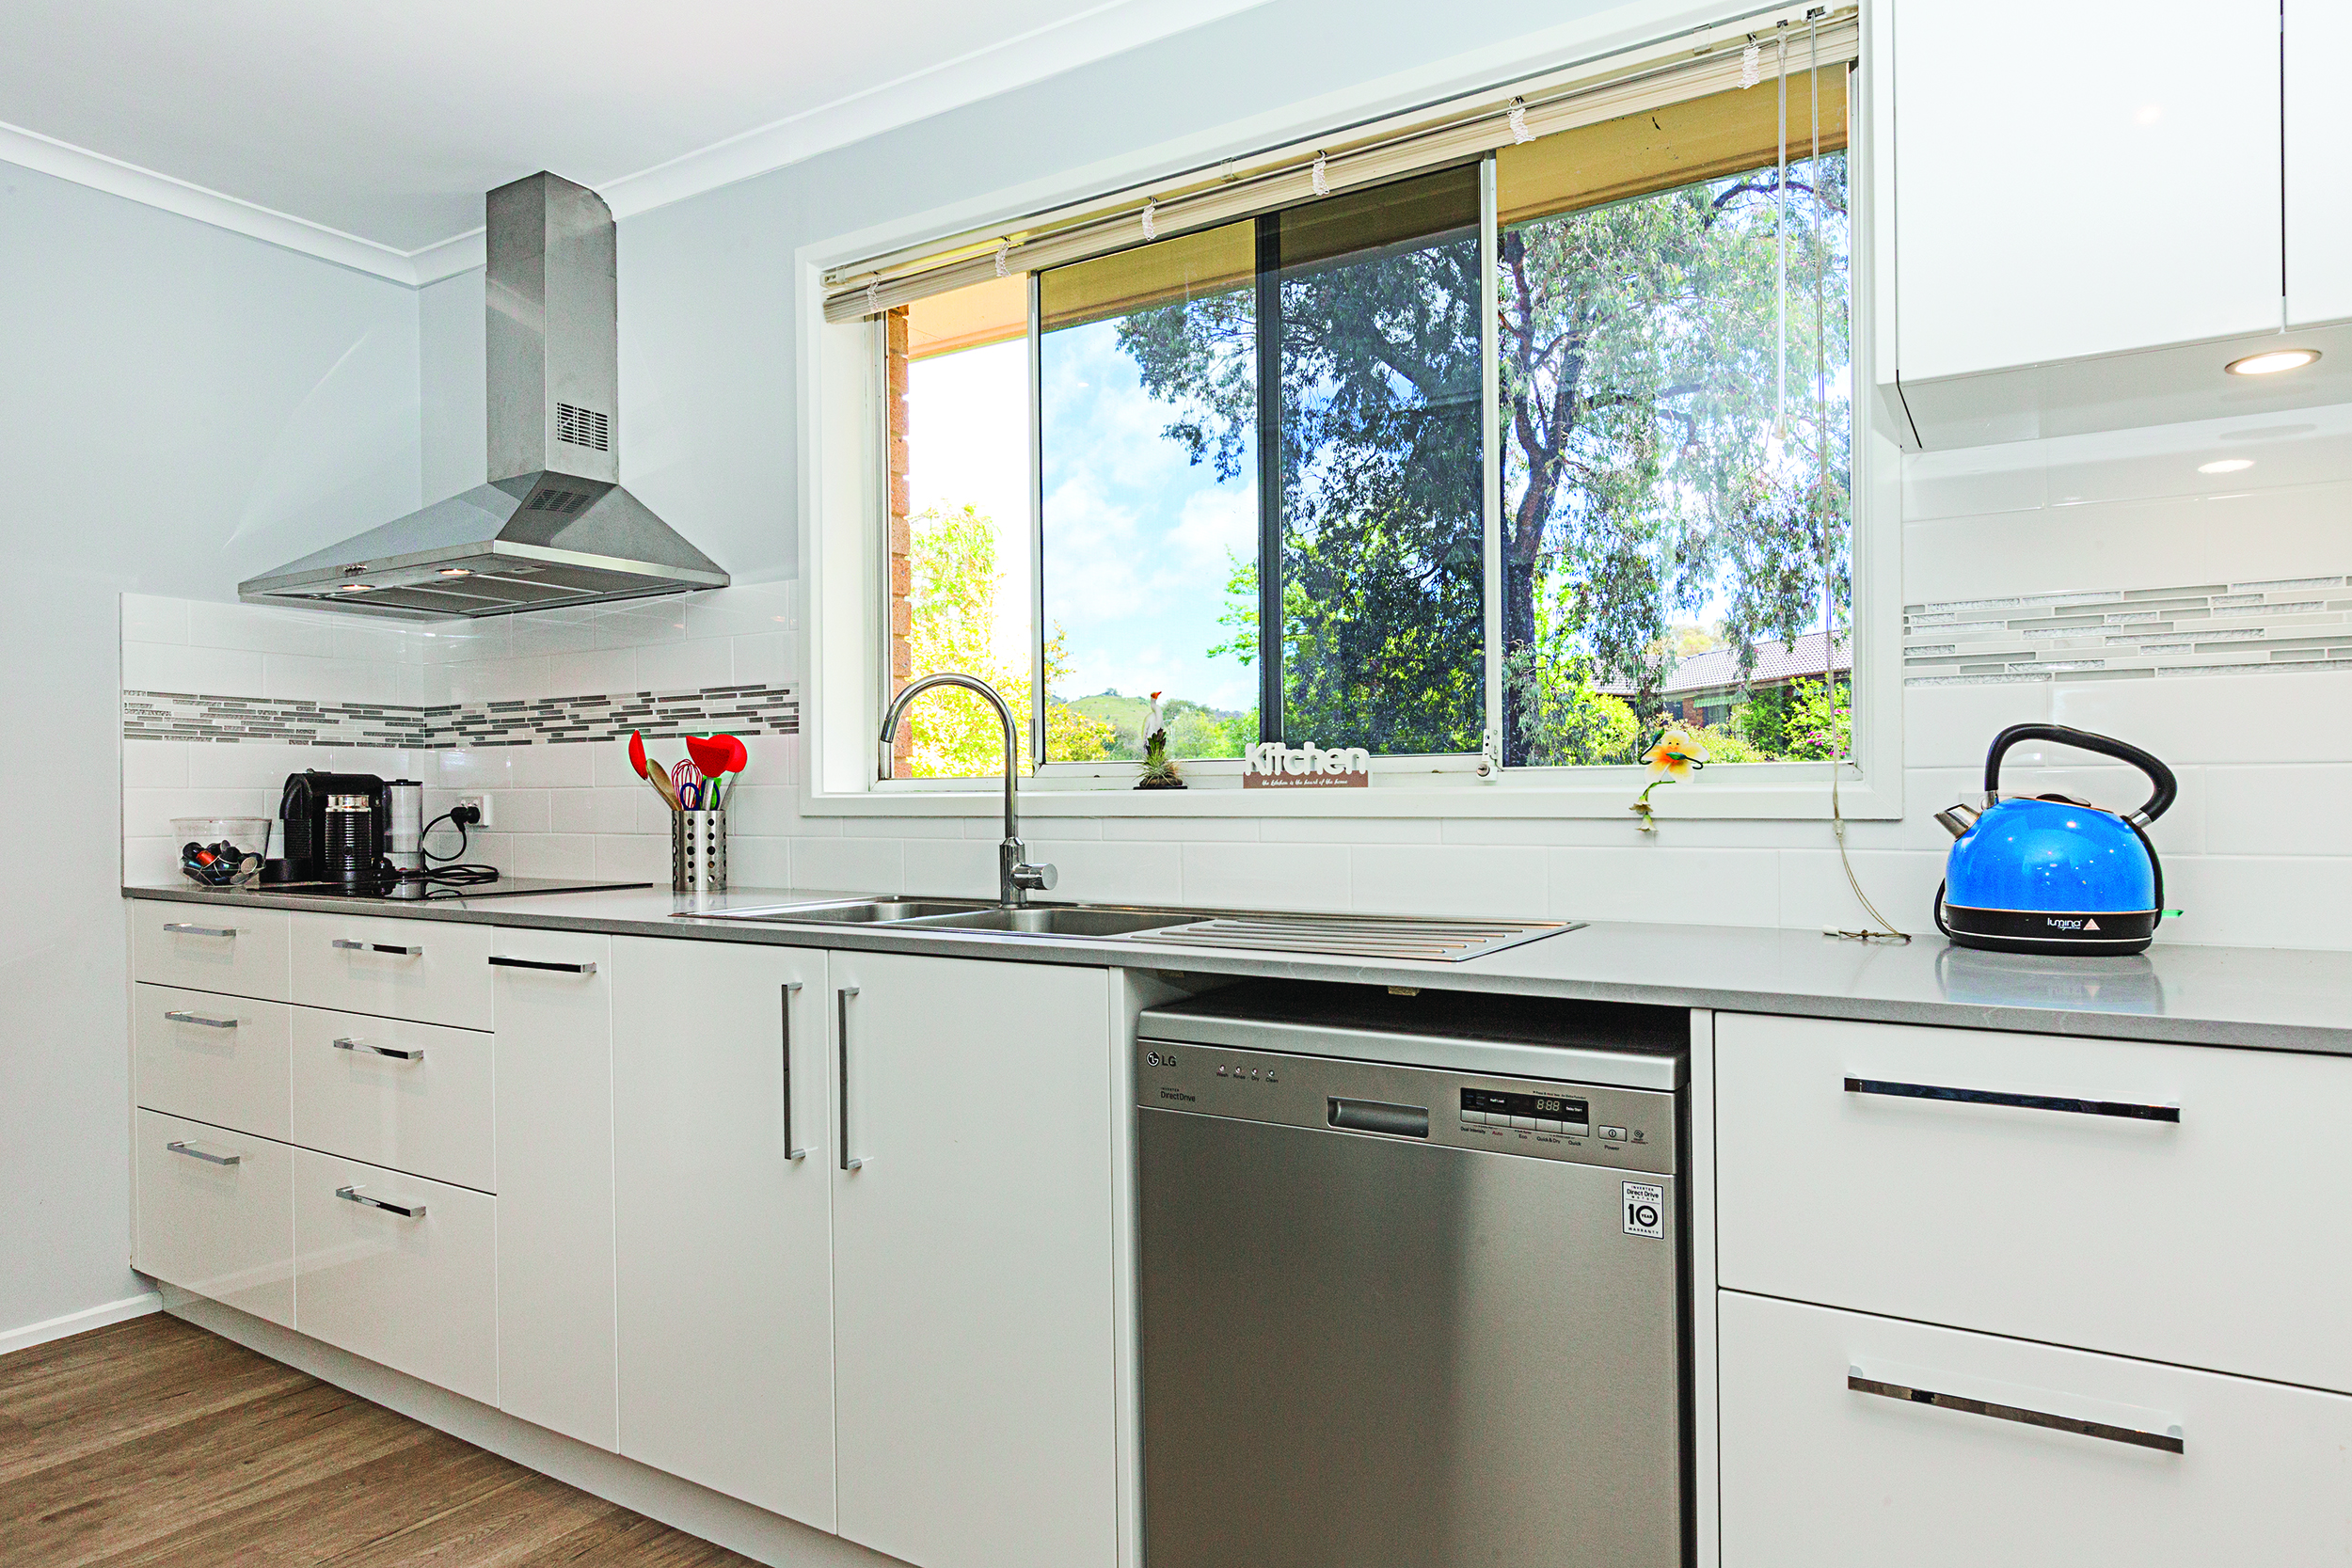 Modular kitchen with white color walls,countertops,shelves.